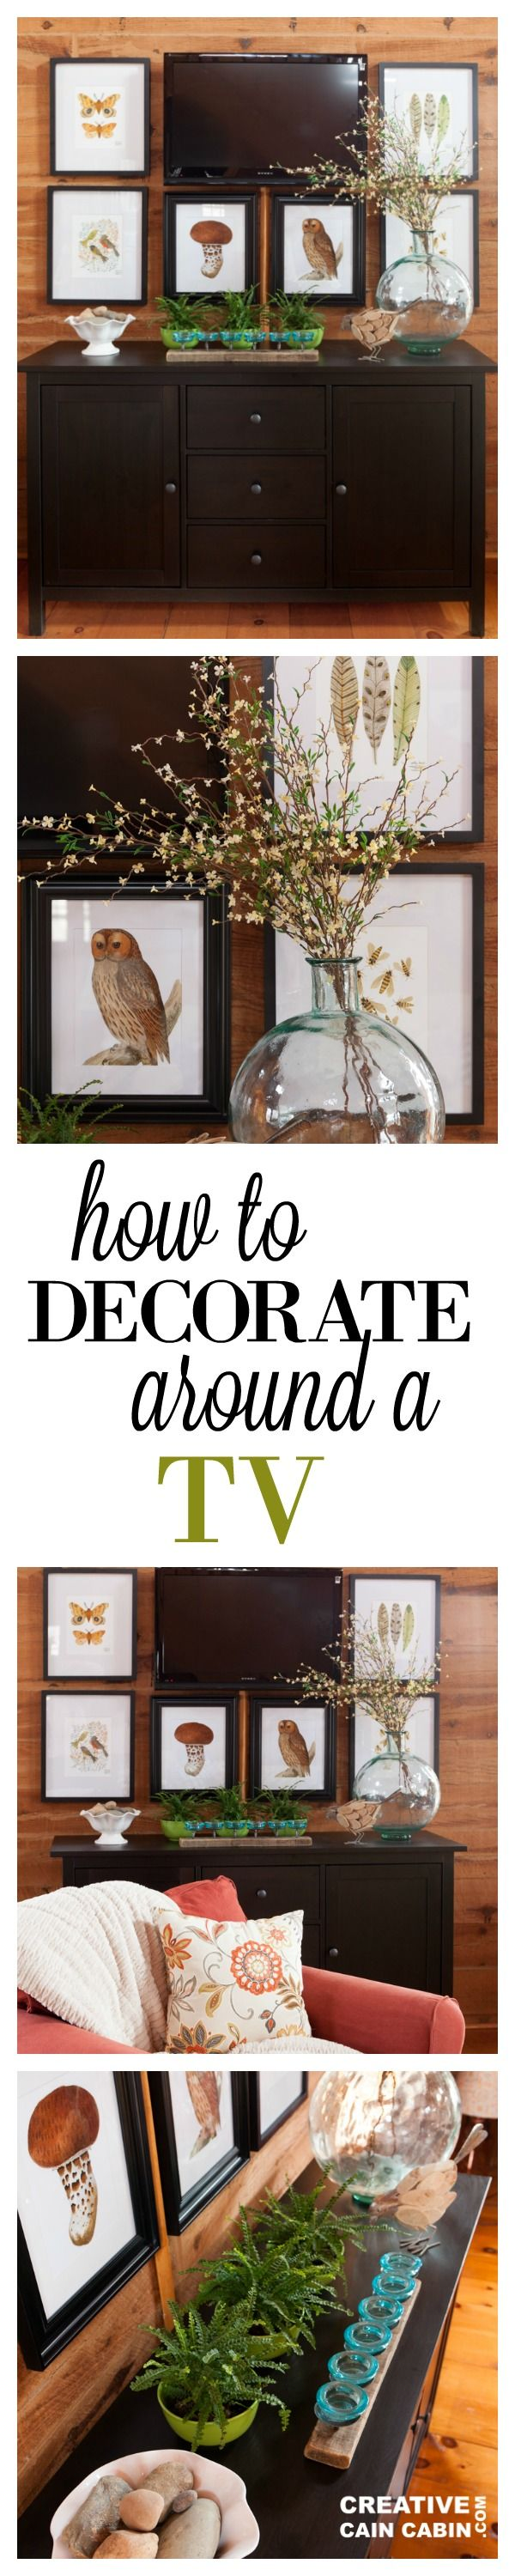 How to Decorate Around a Wall Mounted TV using Artwork